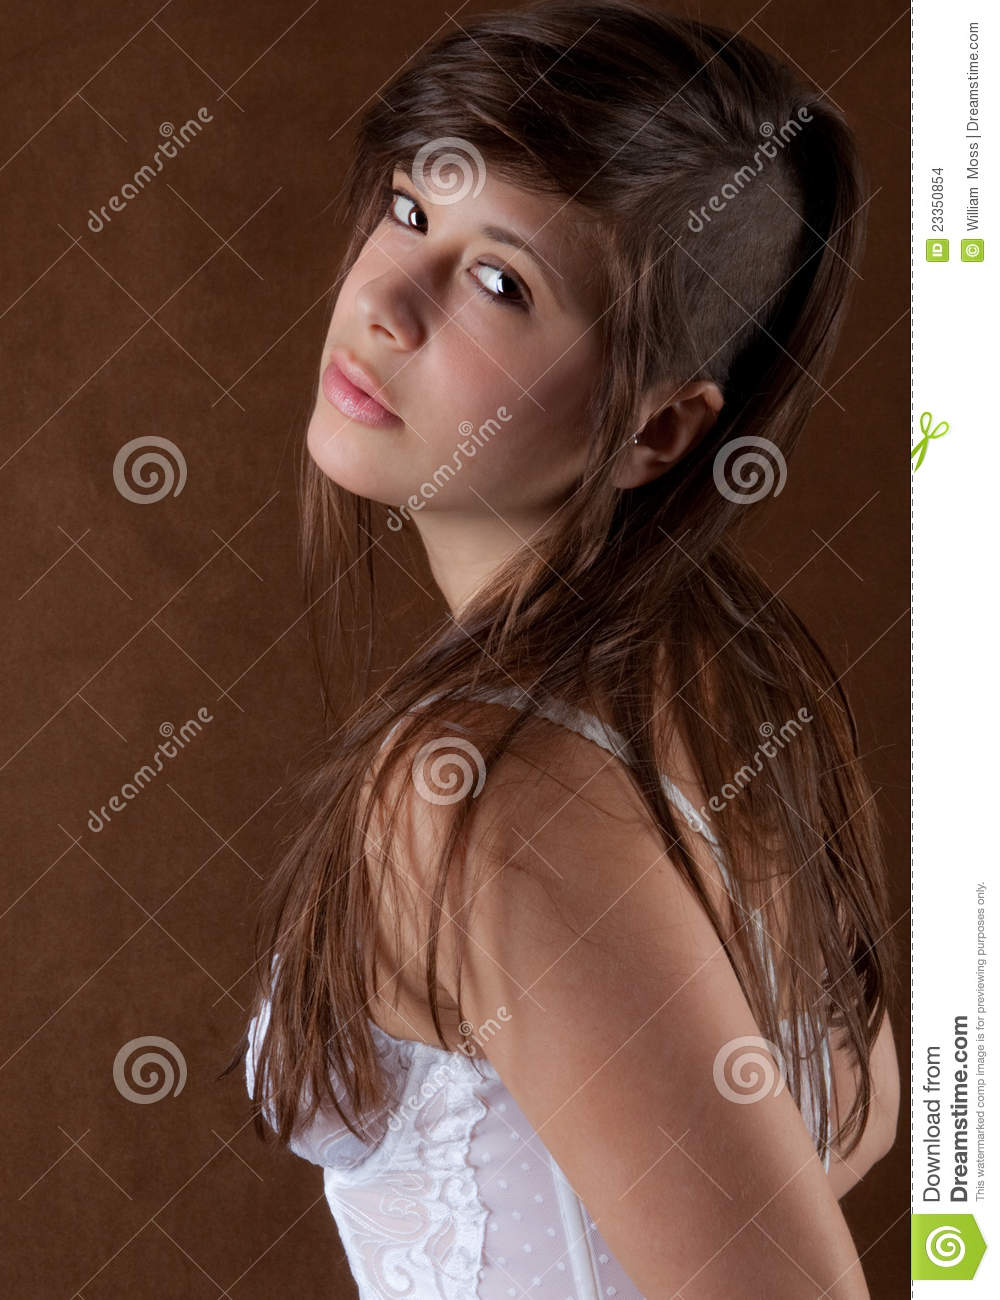 an attractive young woman with a stylish partially-shaved hairstyle